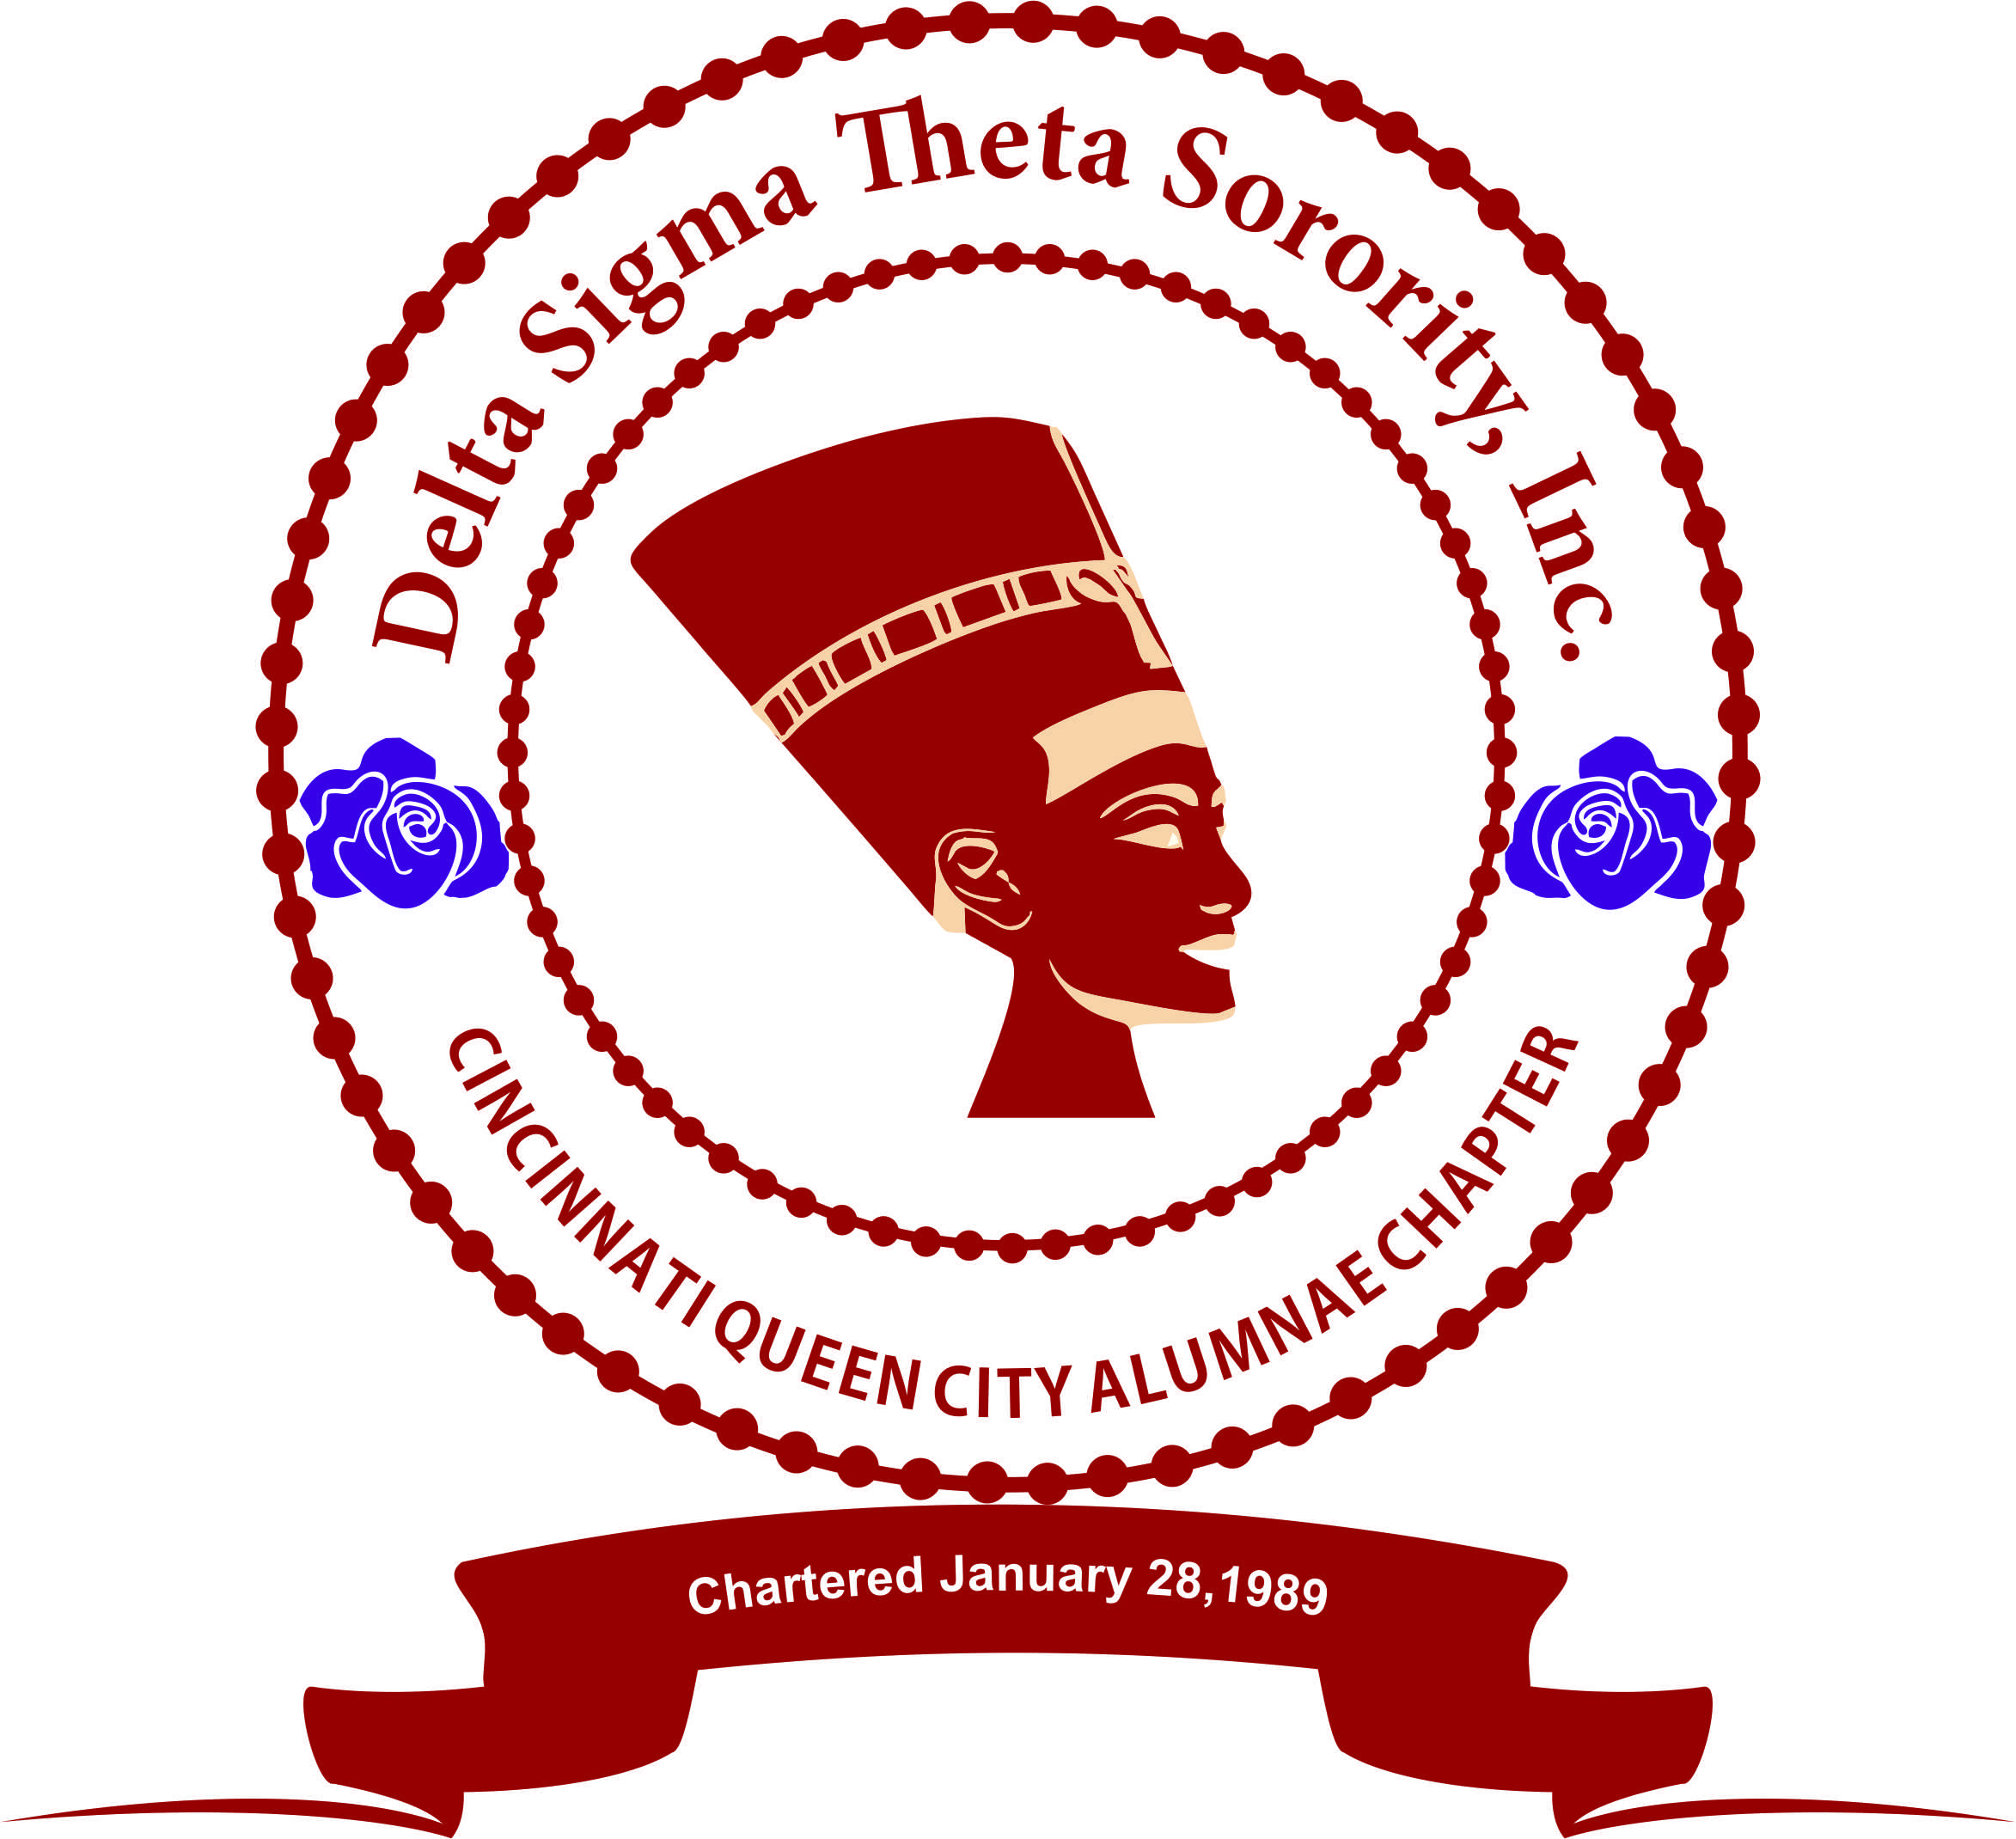 - The Cincinnati Queen City Alumnae Chapter of Delta Sigma Theta Sorority Inc. provides exemplary public service programs to benefit the Greater Cincinnati community. Our dedicated and committed members are steadfast in providing public service programs that support educational development, political awareness and involvement, physical and mental health, international awareness and involvement, and economic development. With a commitment to Sisterhood, Scholarship, and Service,we uphold the ideals of our founders as we carry our rich heritage and legacy into the 21st century.